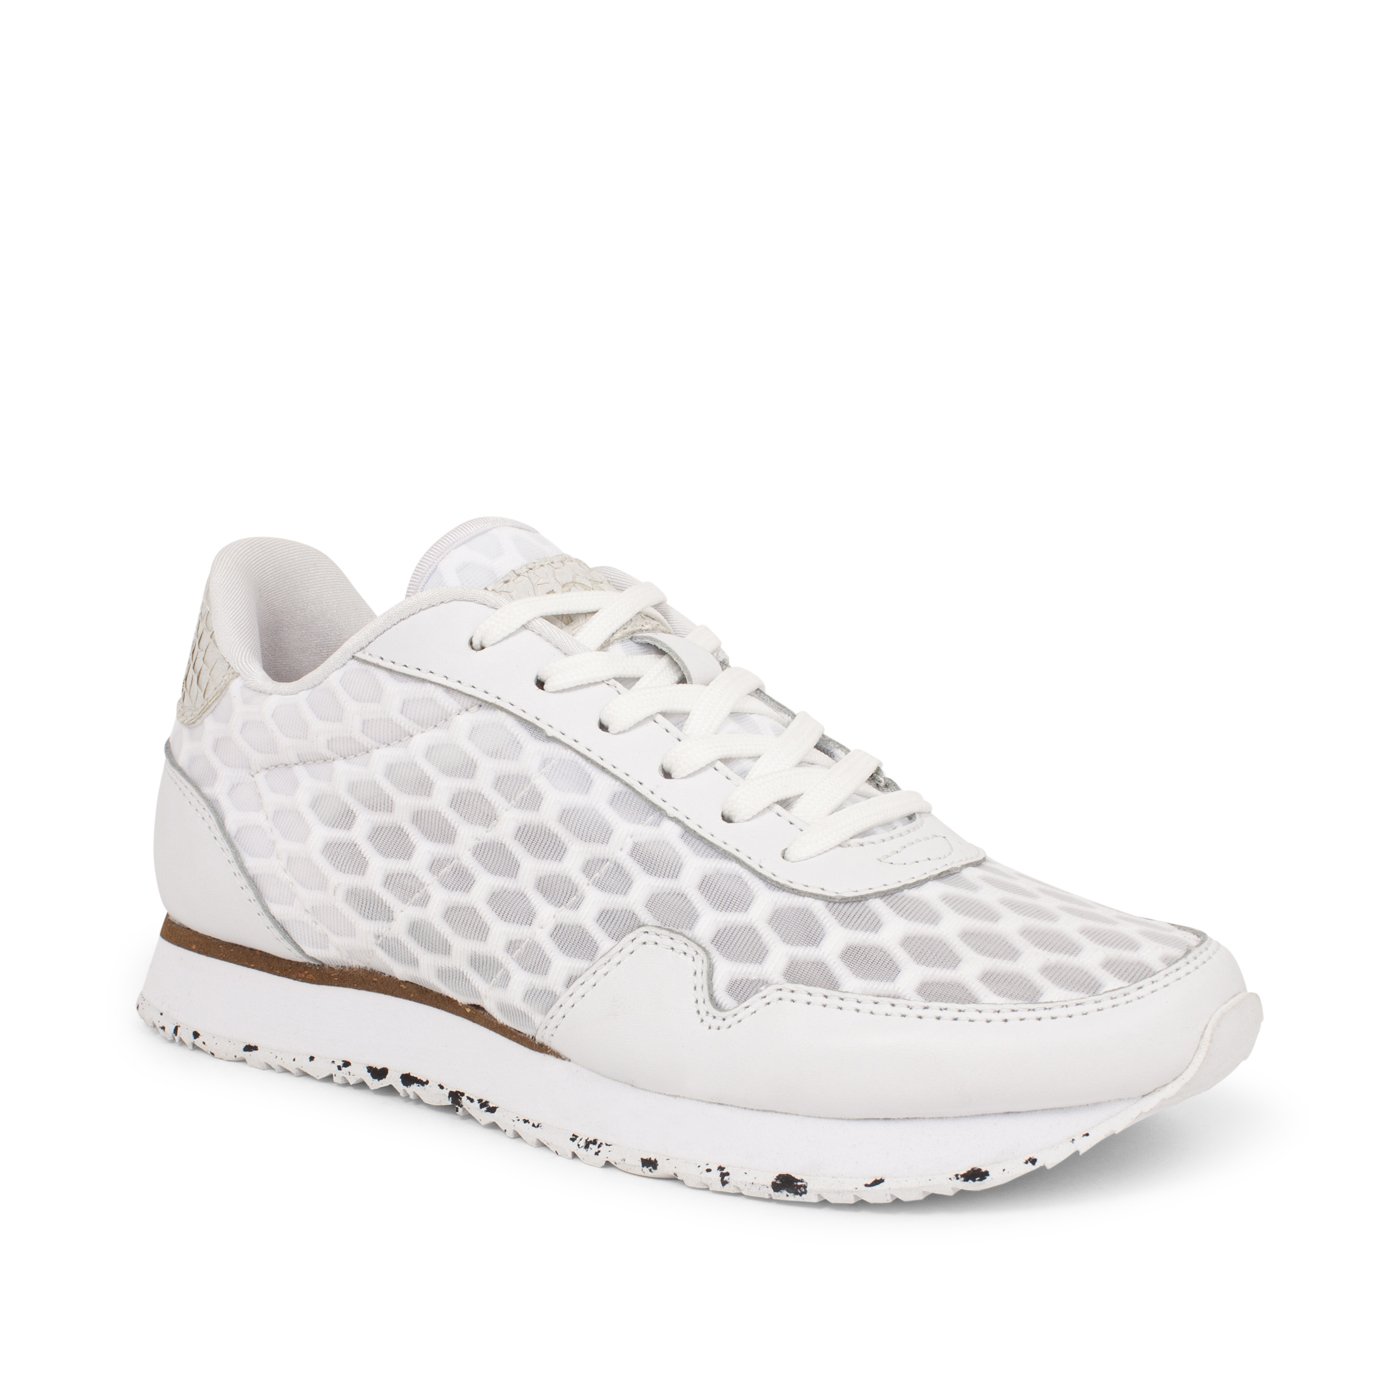 Nora III Mesh Leather Bright White